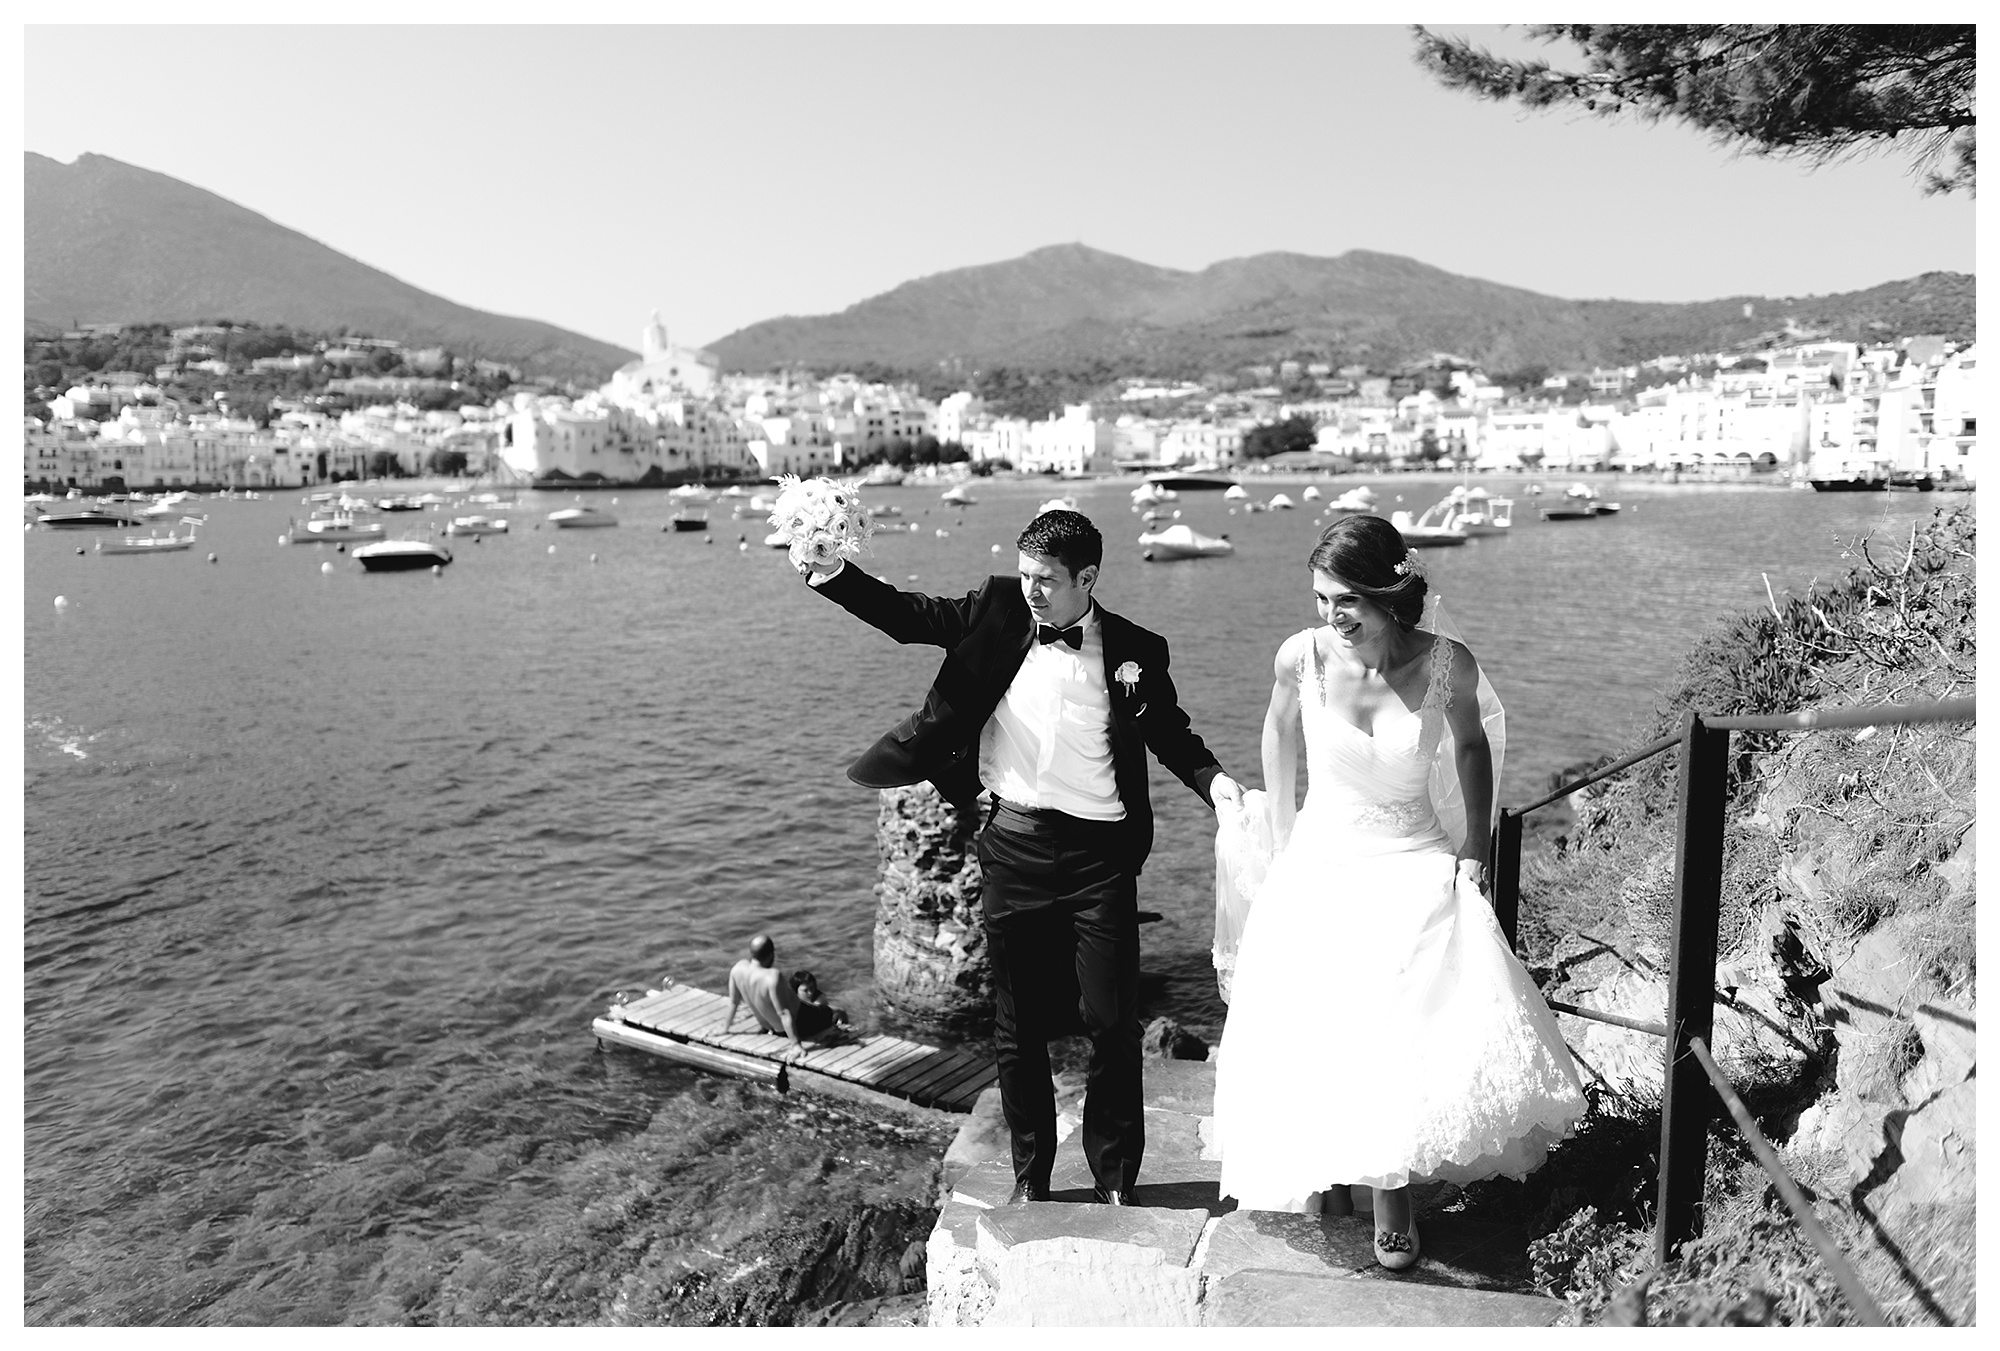 Fotograf Konstanz - Wedding Spain Cadaques Elmar Feuerbacher Photography 29 - Als Destination Wedding Fotograf in Cadaqués, Spanien  - 29 -